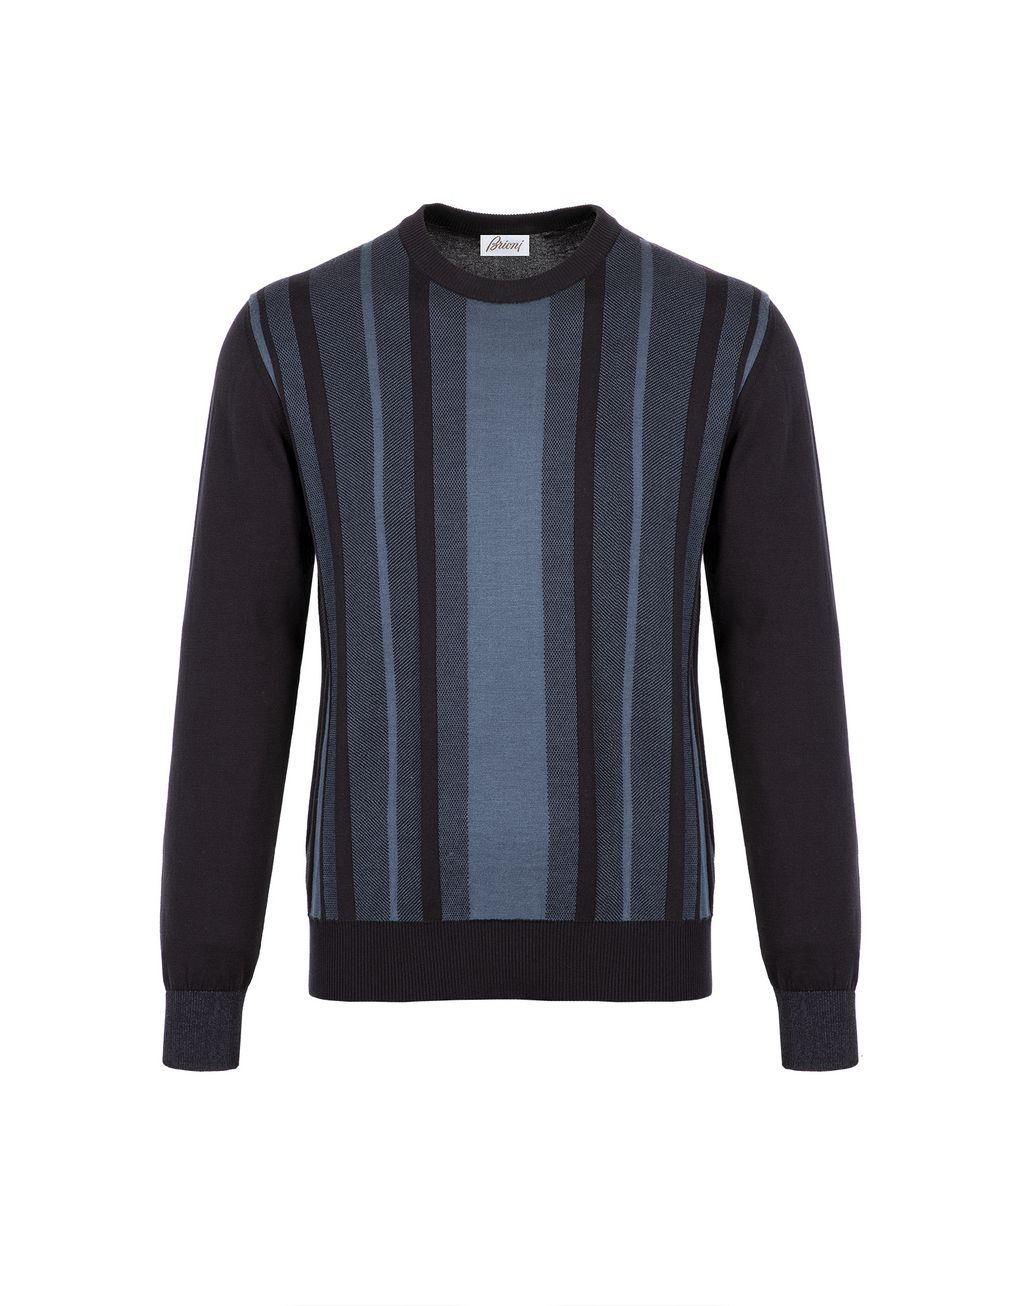 BRIONI Navy-Blue Cotton and Silk Striped Sweater with Two-Tone Trim Knitwear Man f